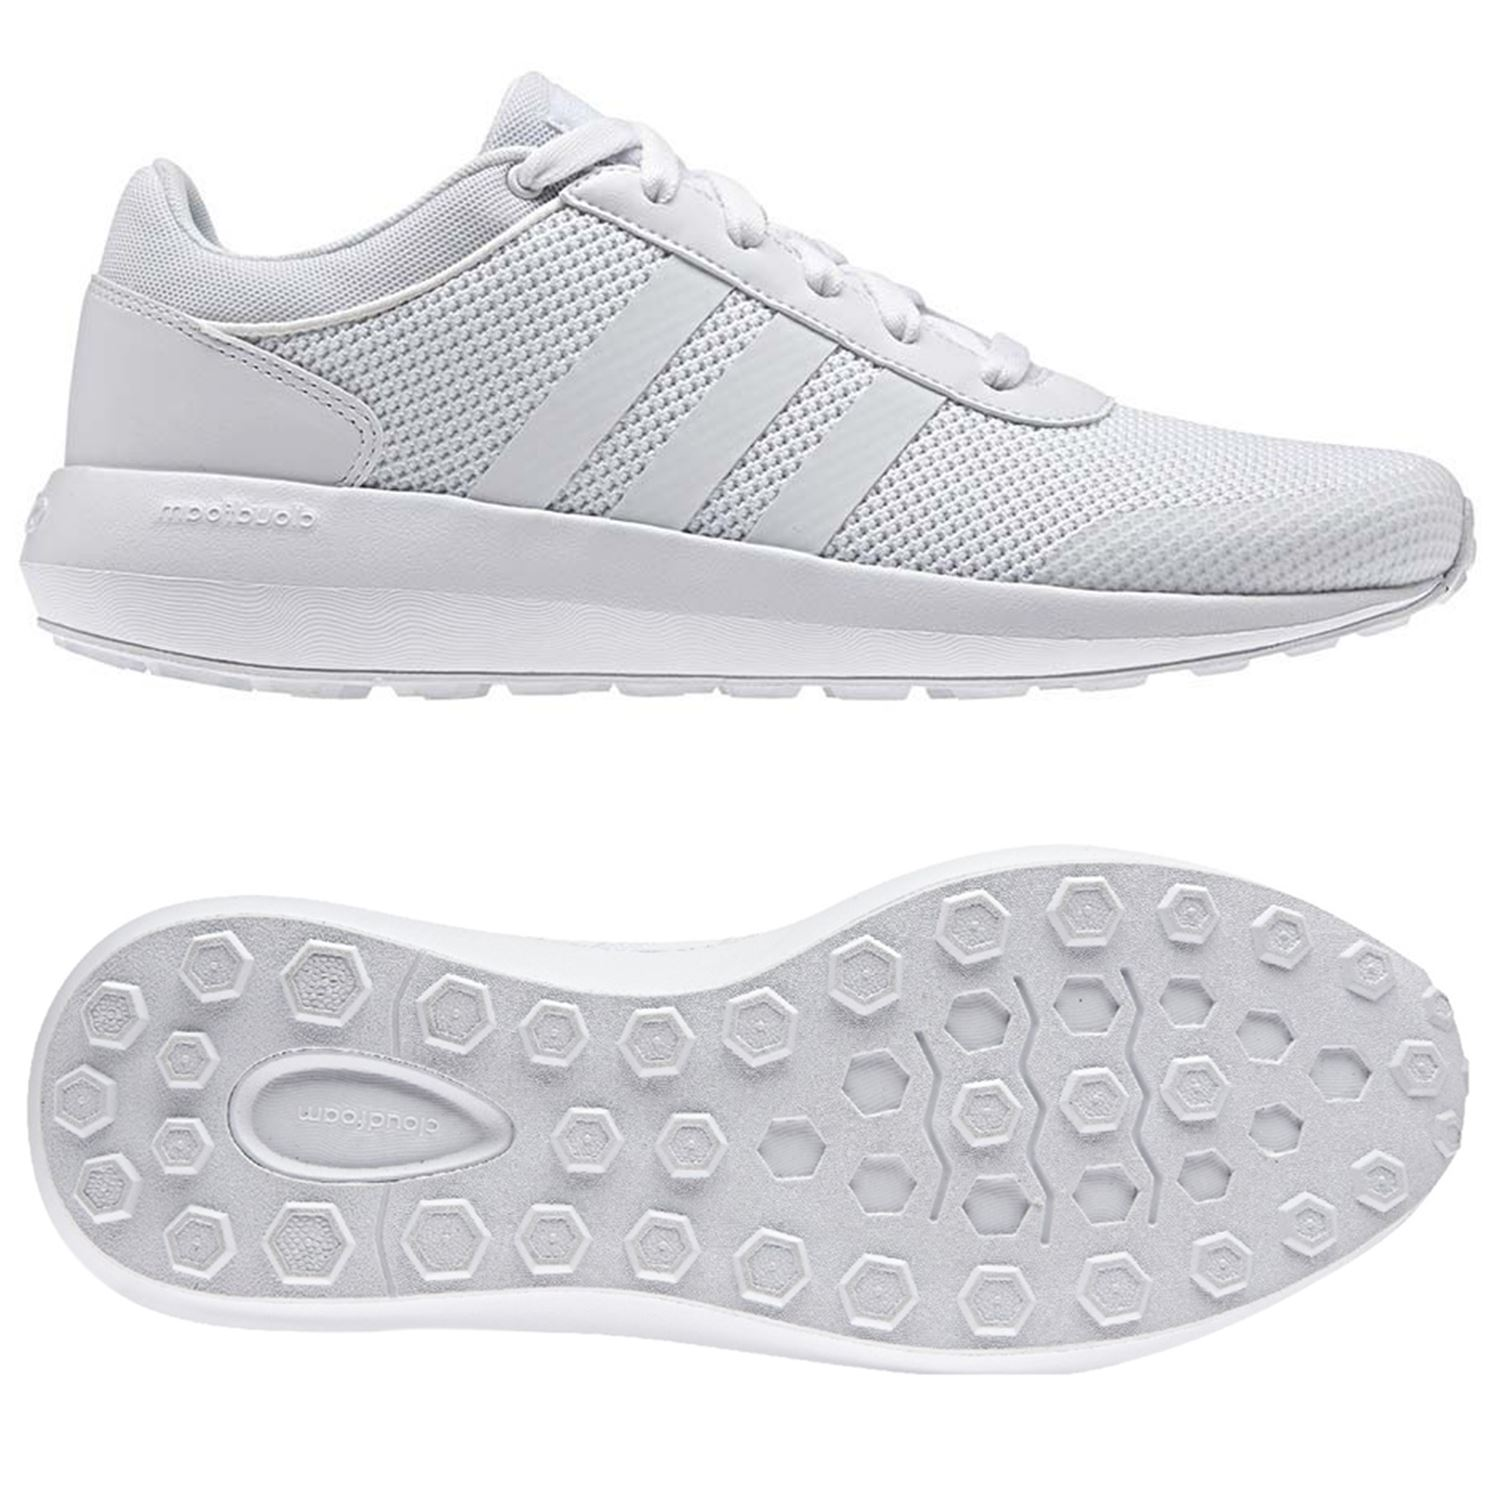 Adidas MEN'S CLOUDFOAM TRAINERS GYM ACTIVE NEW Schuhe COMFORTABLE NEW Weiß NEW ACTIVE 0392bb